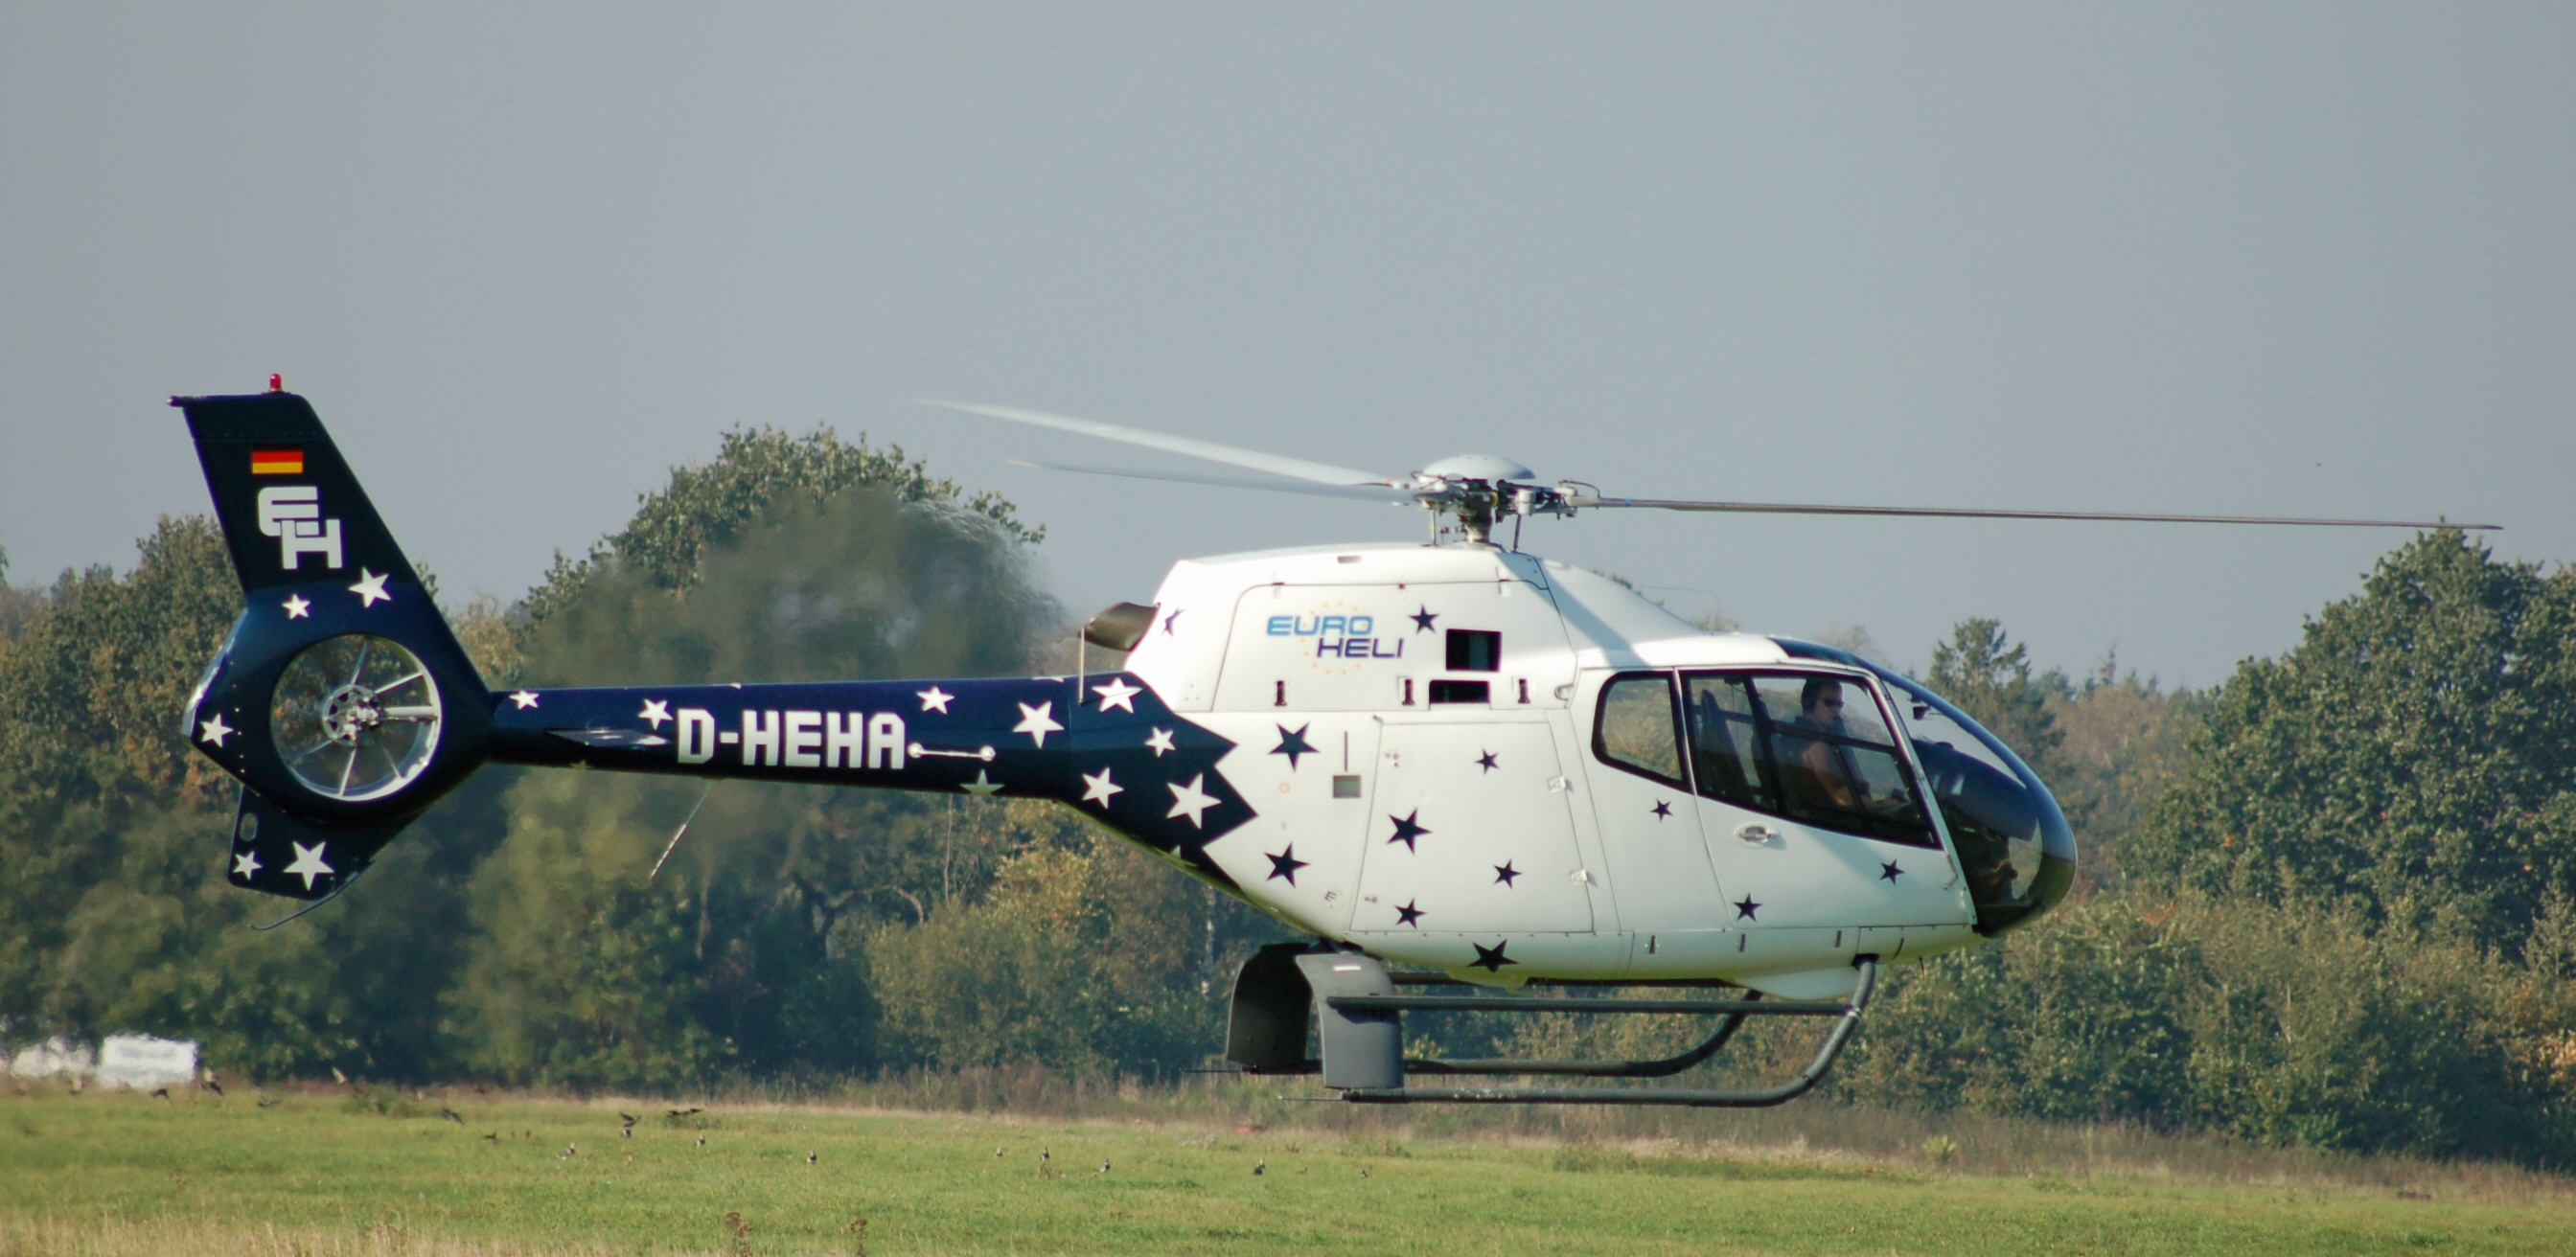 https://upload.wikimedia.org/wikipedia/commons/b/bb/Eurocopter_EC-120B_Colibri_%28D-HEHA%29_03.jpg